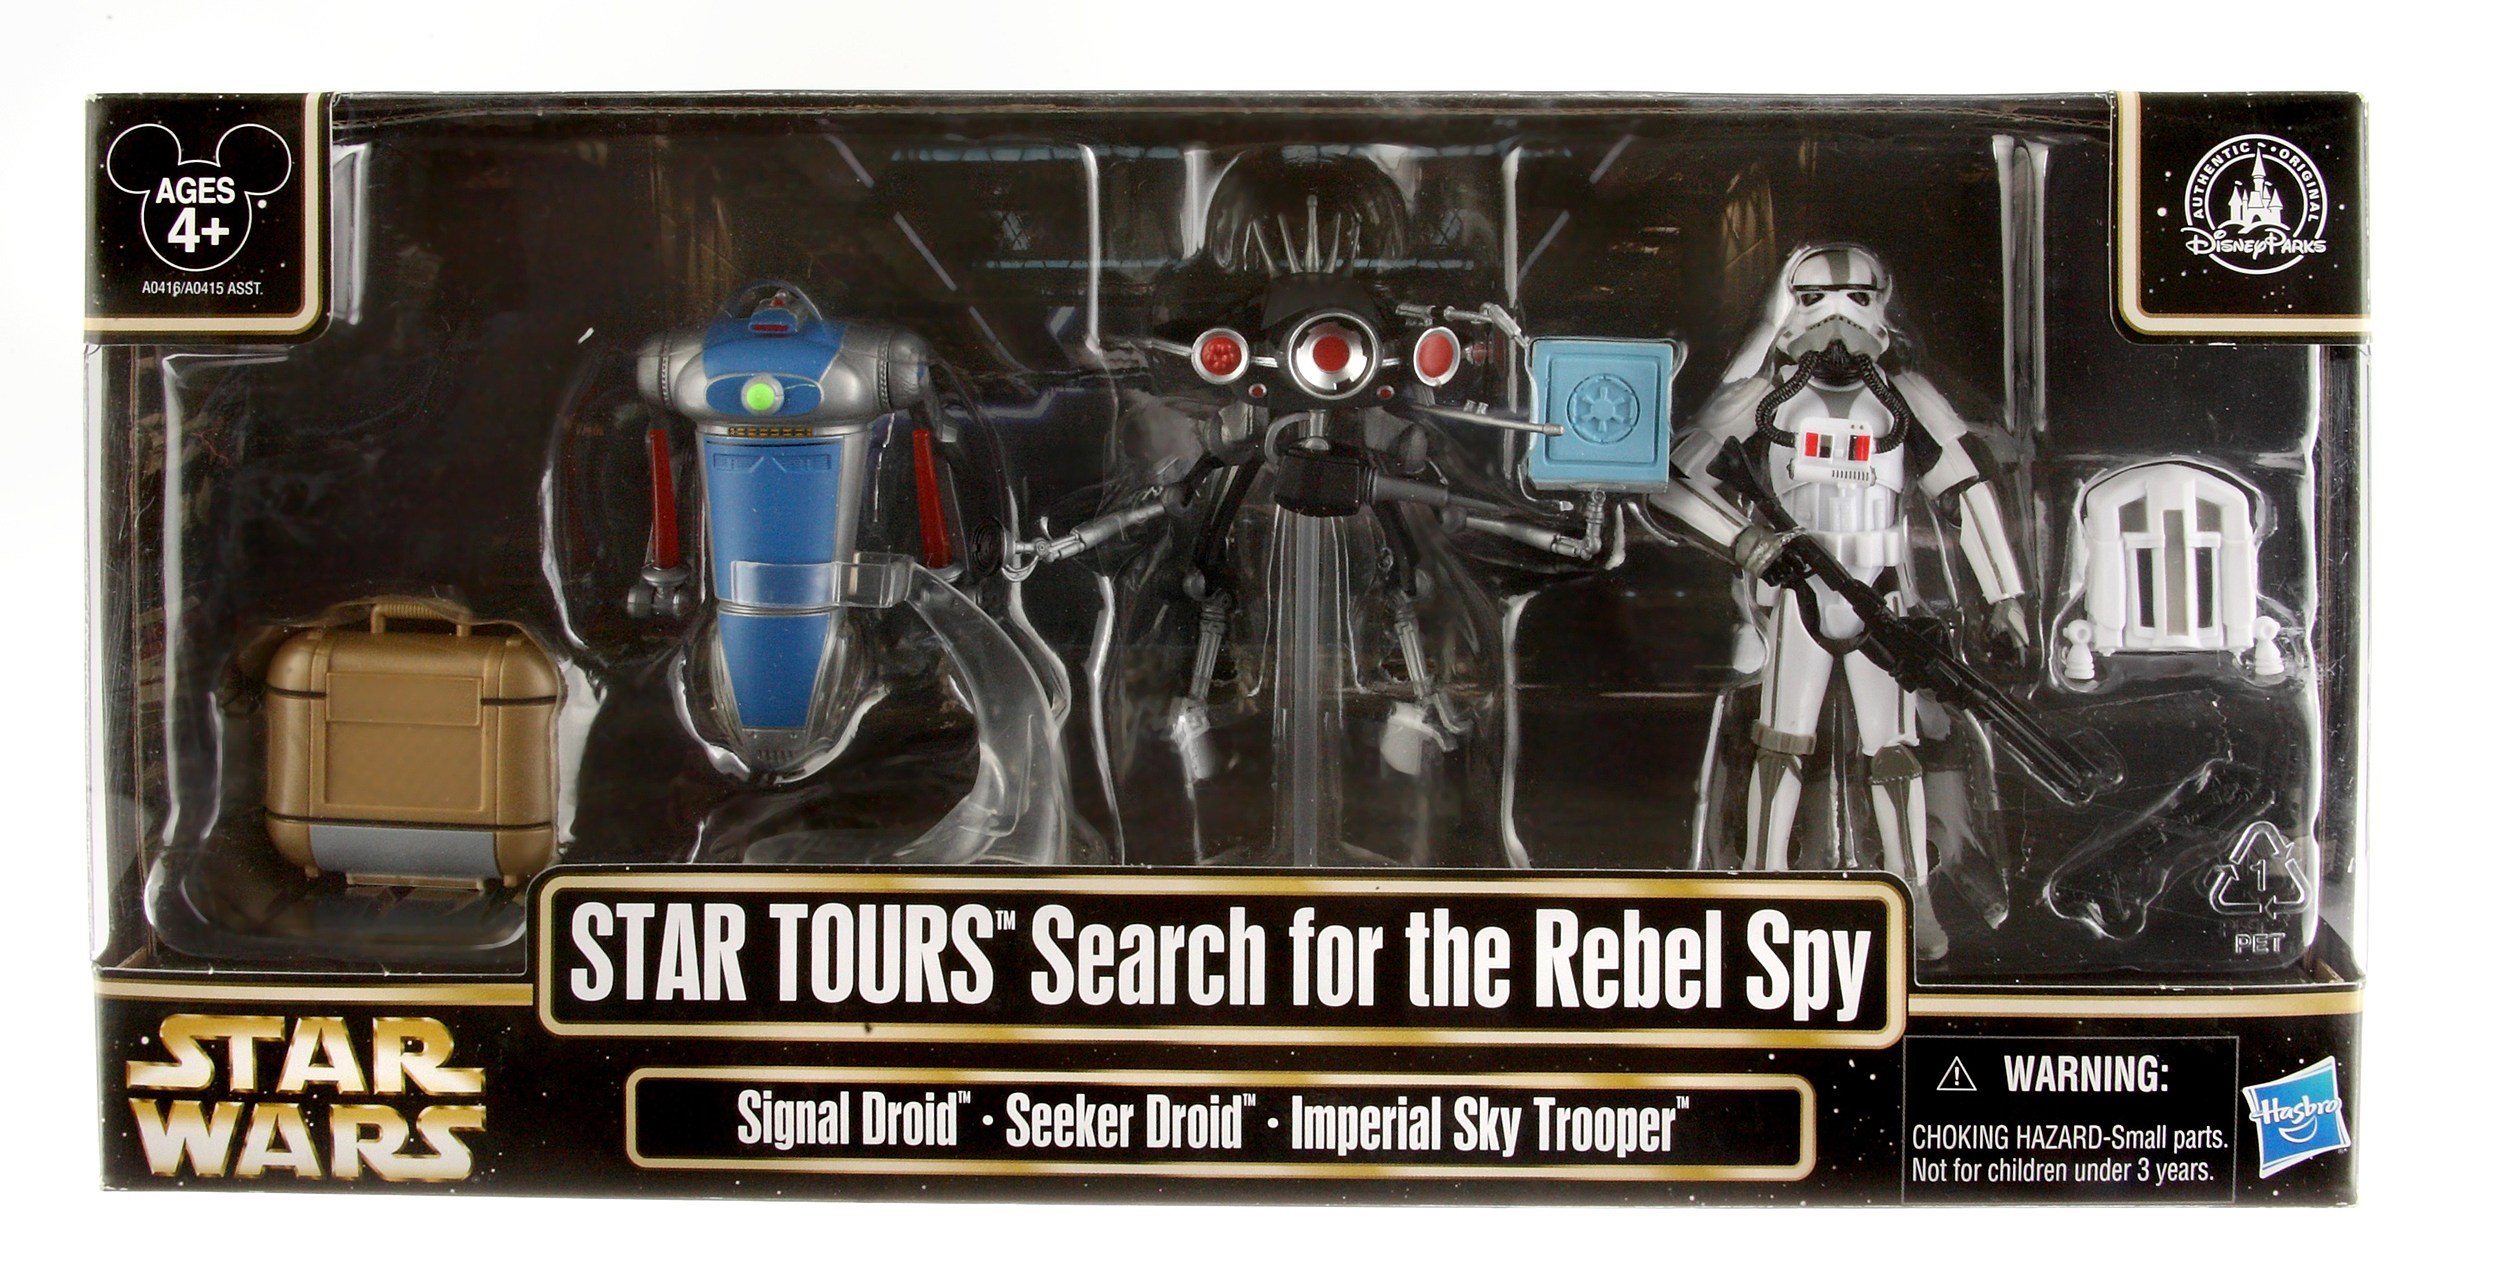 Star Wars Toys Hasbro : Hasbro announces new 'star tours action figure sets